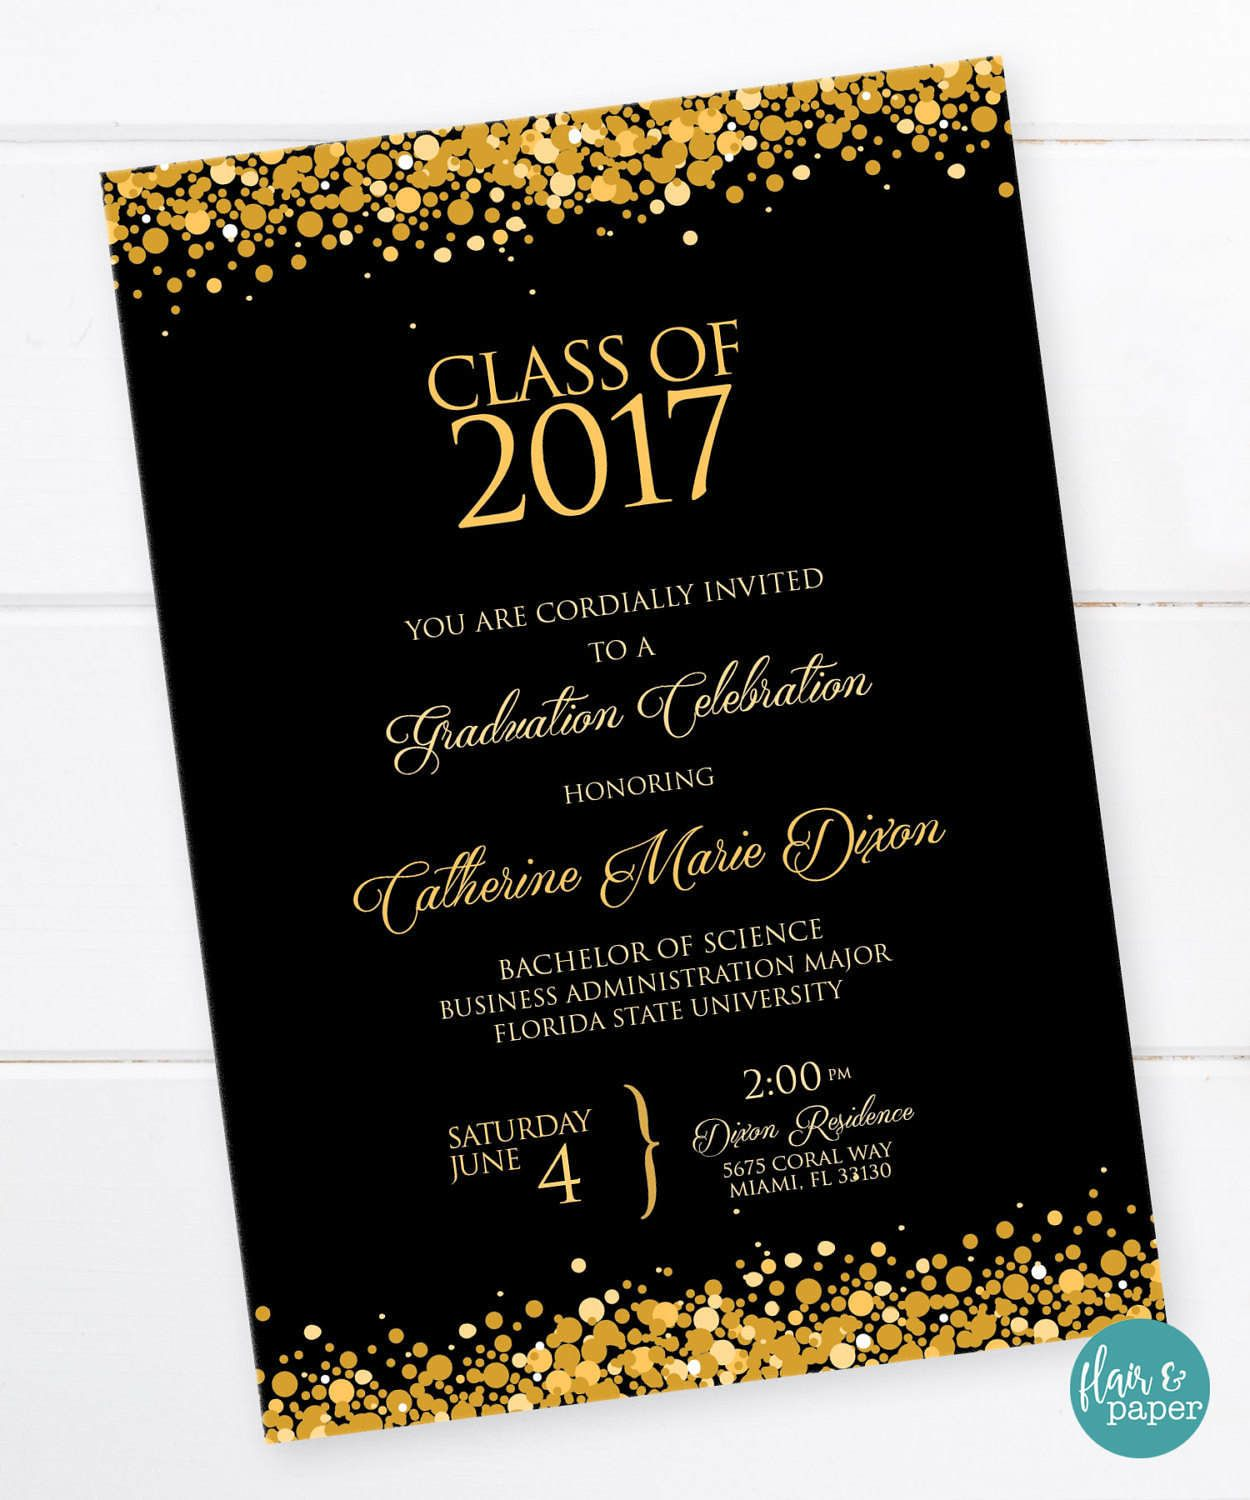 graduation invitation  graduation celebration  college graduation  high school graduation